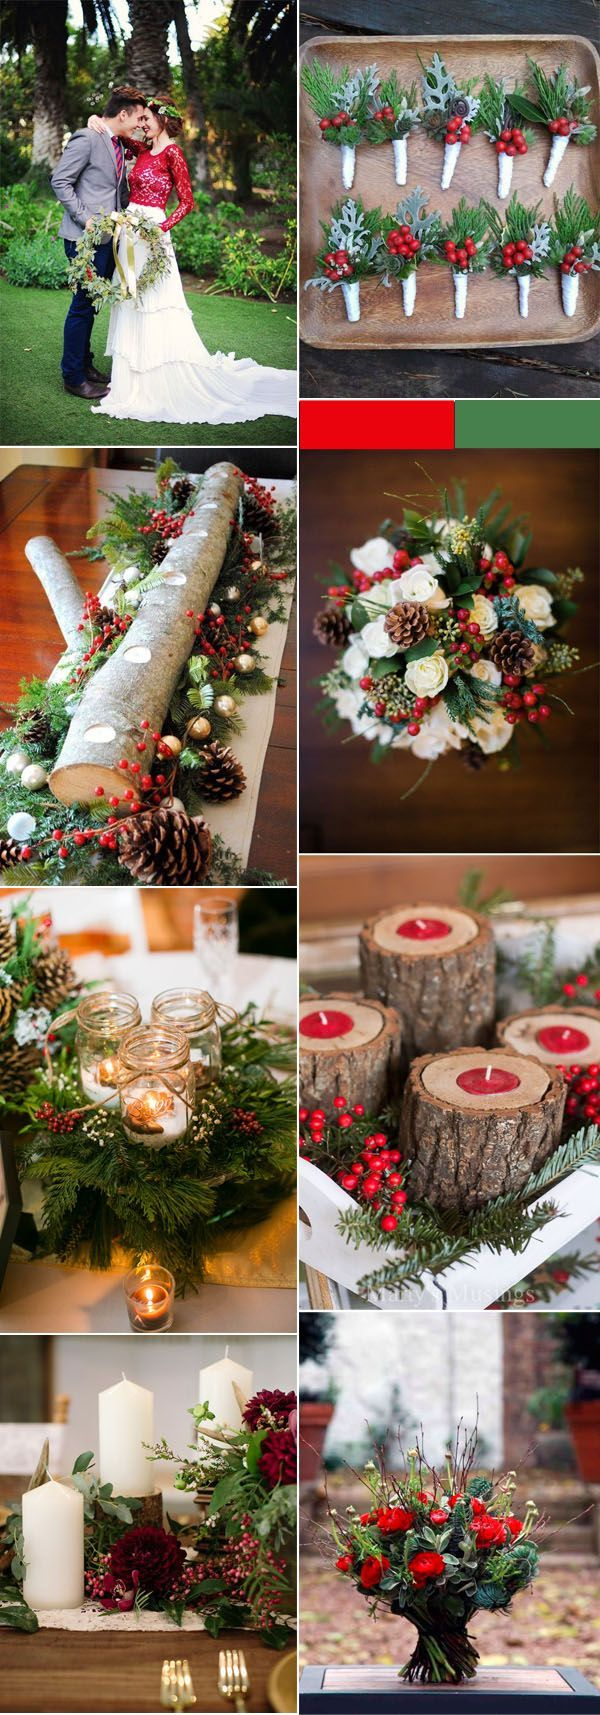 Wedding decorations red   best wedding ideas images on Pinterest  Weddings Getting